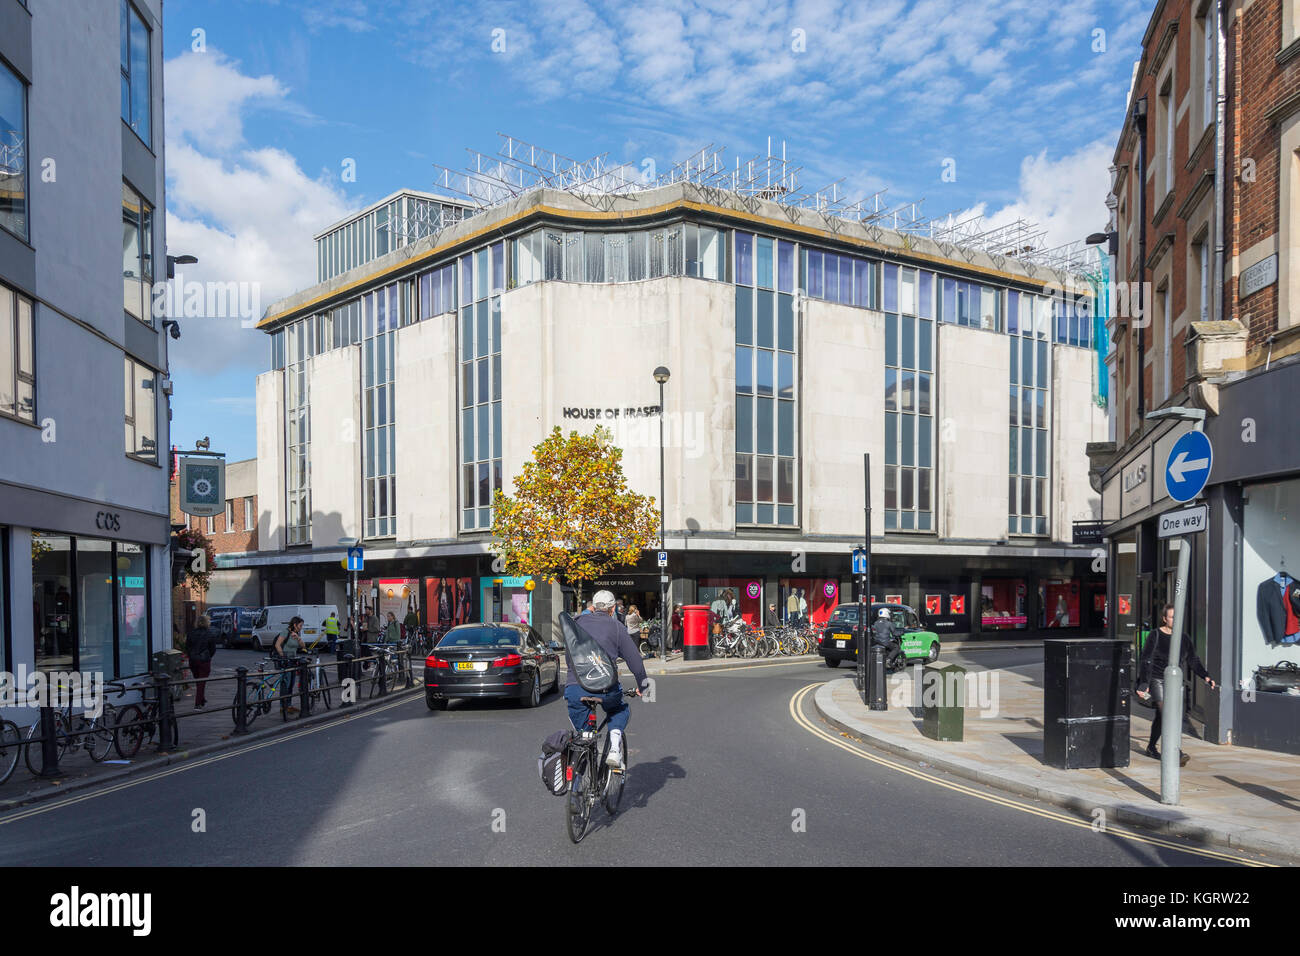 House of Fraser department store, George Street, Richmond, London Borough of Richmond upon Thames, Greater London, - Stock Image